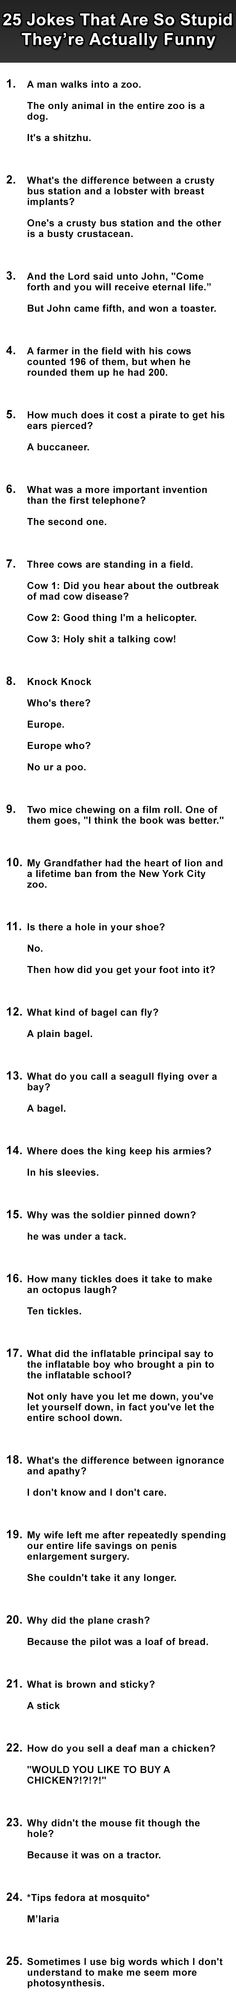 Jokes that are so stupid theyre funny. Number 20 gets me and I don't even understand